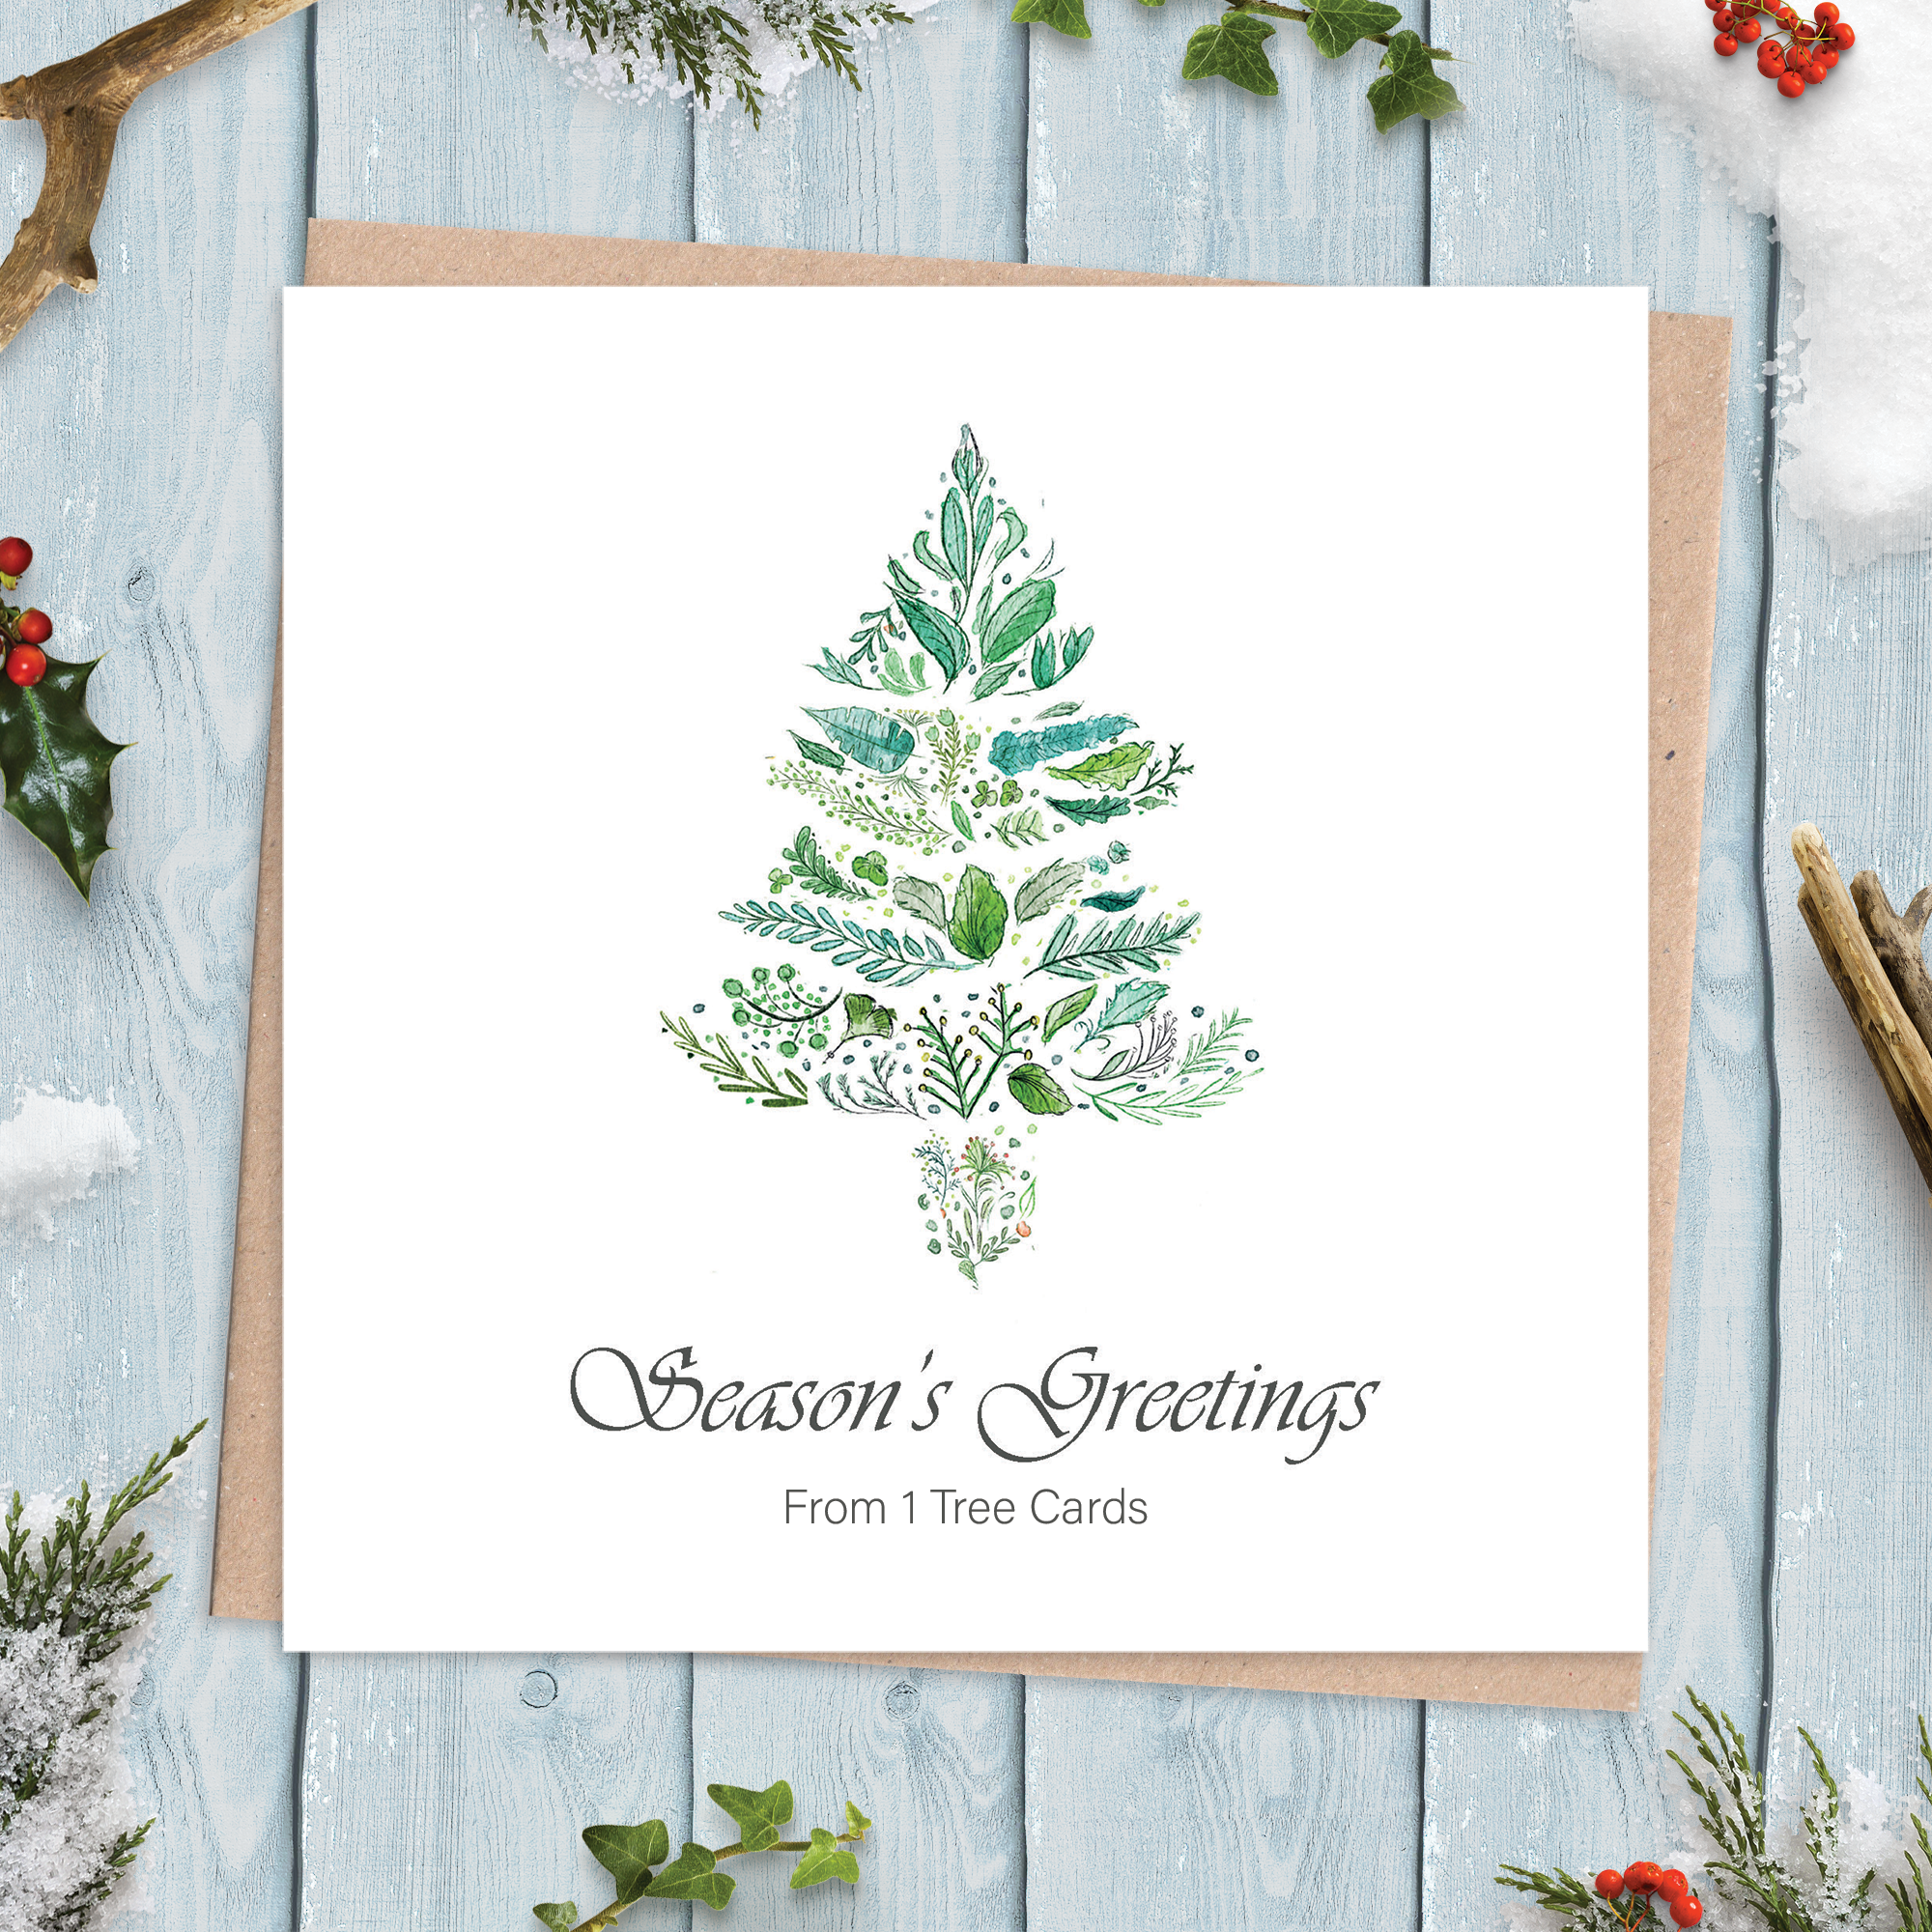 Corporate Christmas Cards with Tree Design